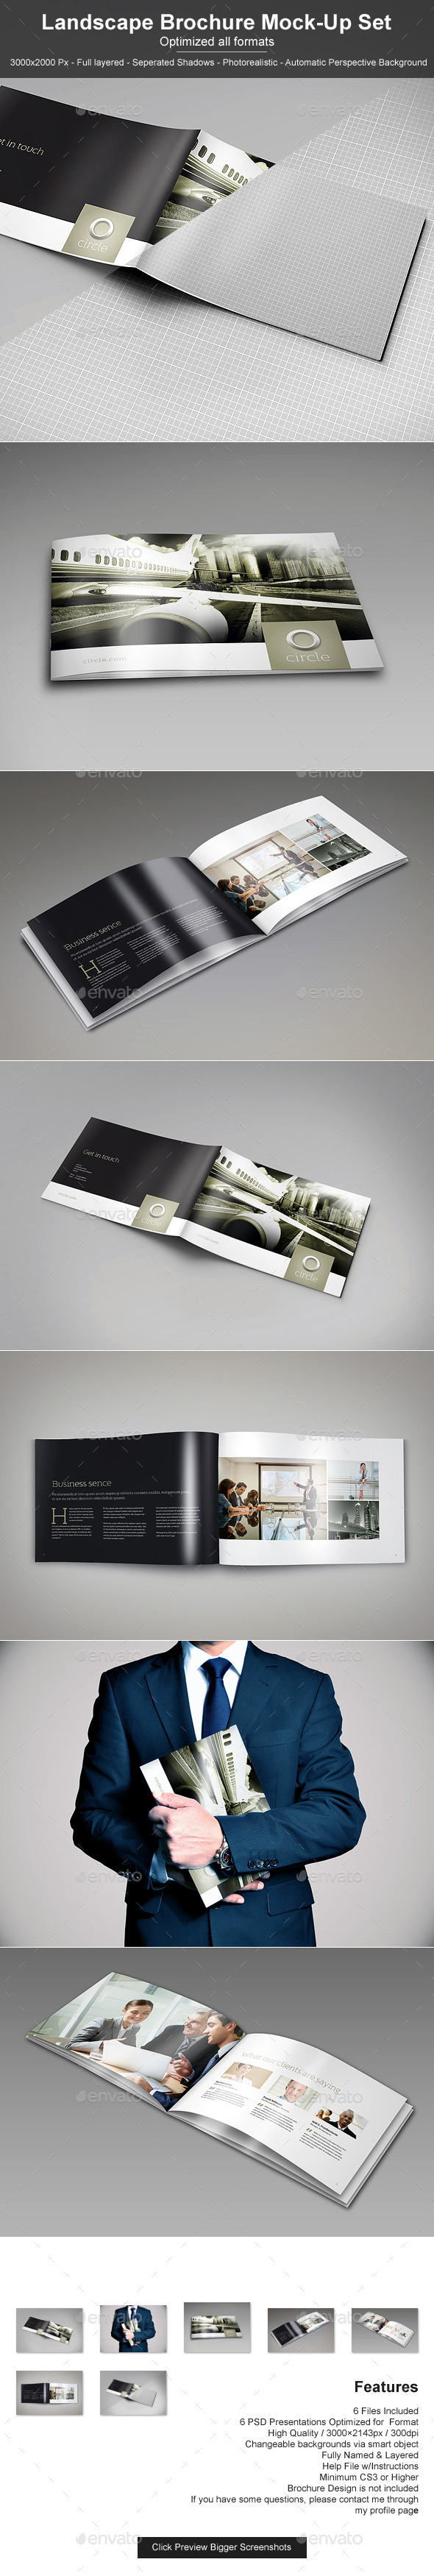 GraphicRiver Landscape Brochure Mock-Up Set 2 11269351